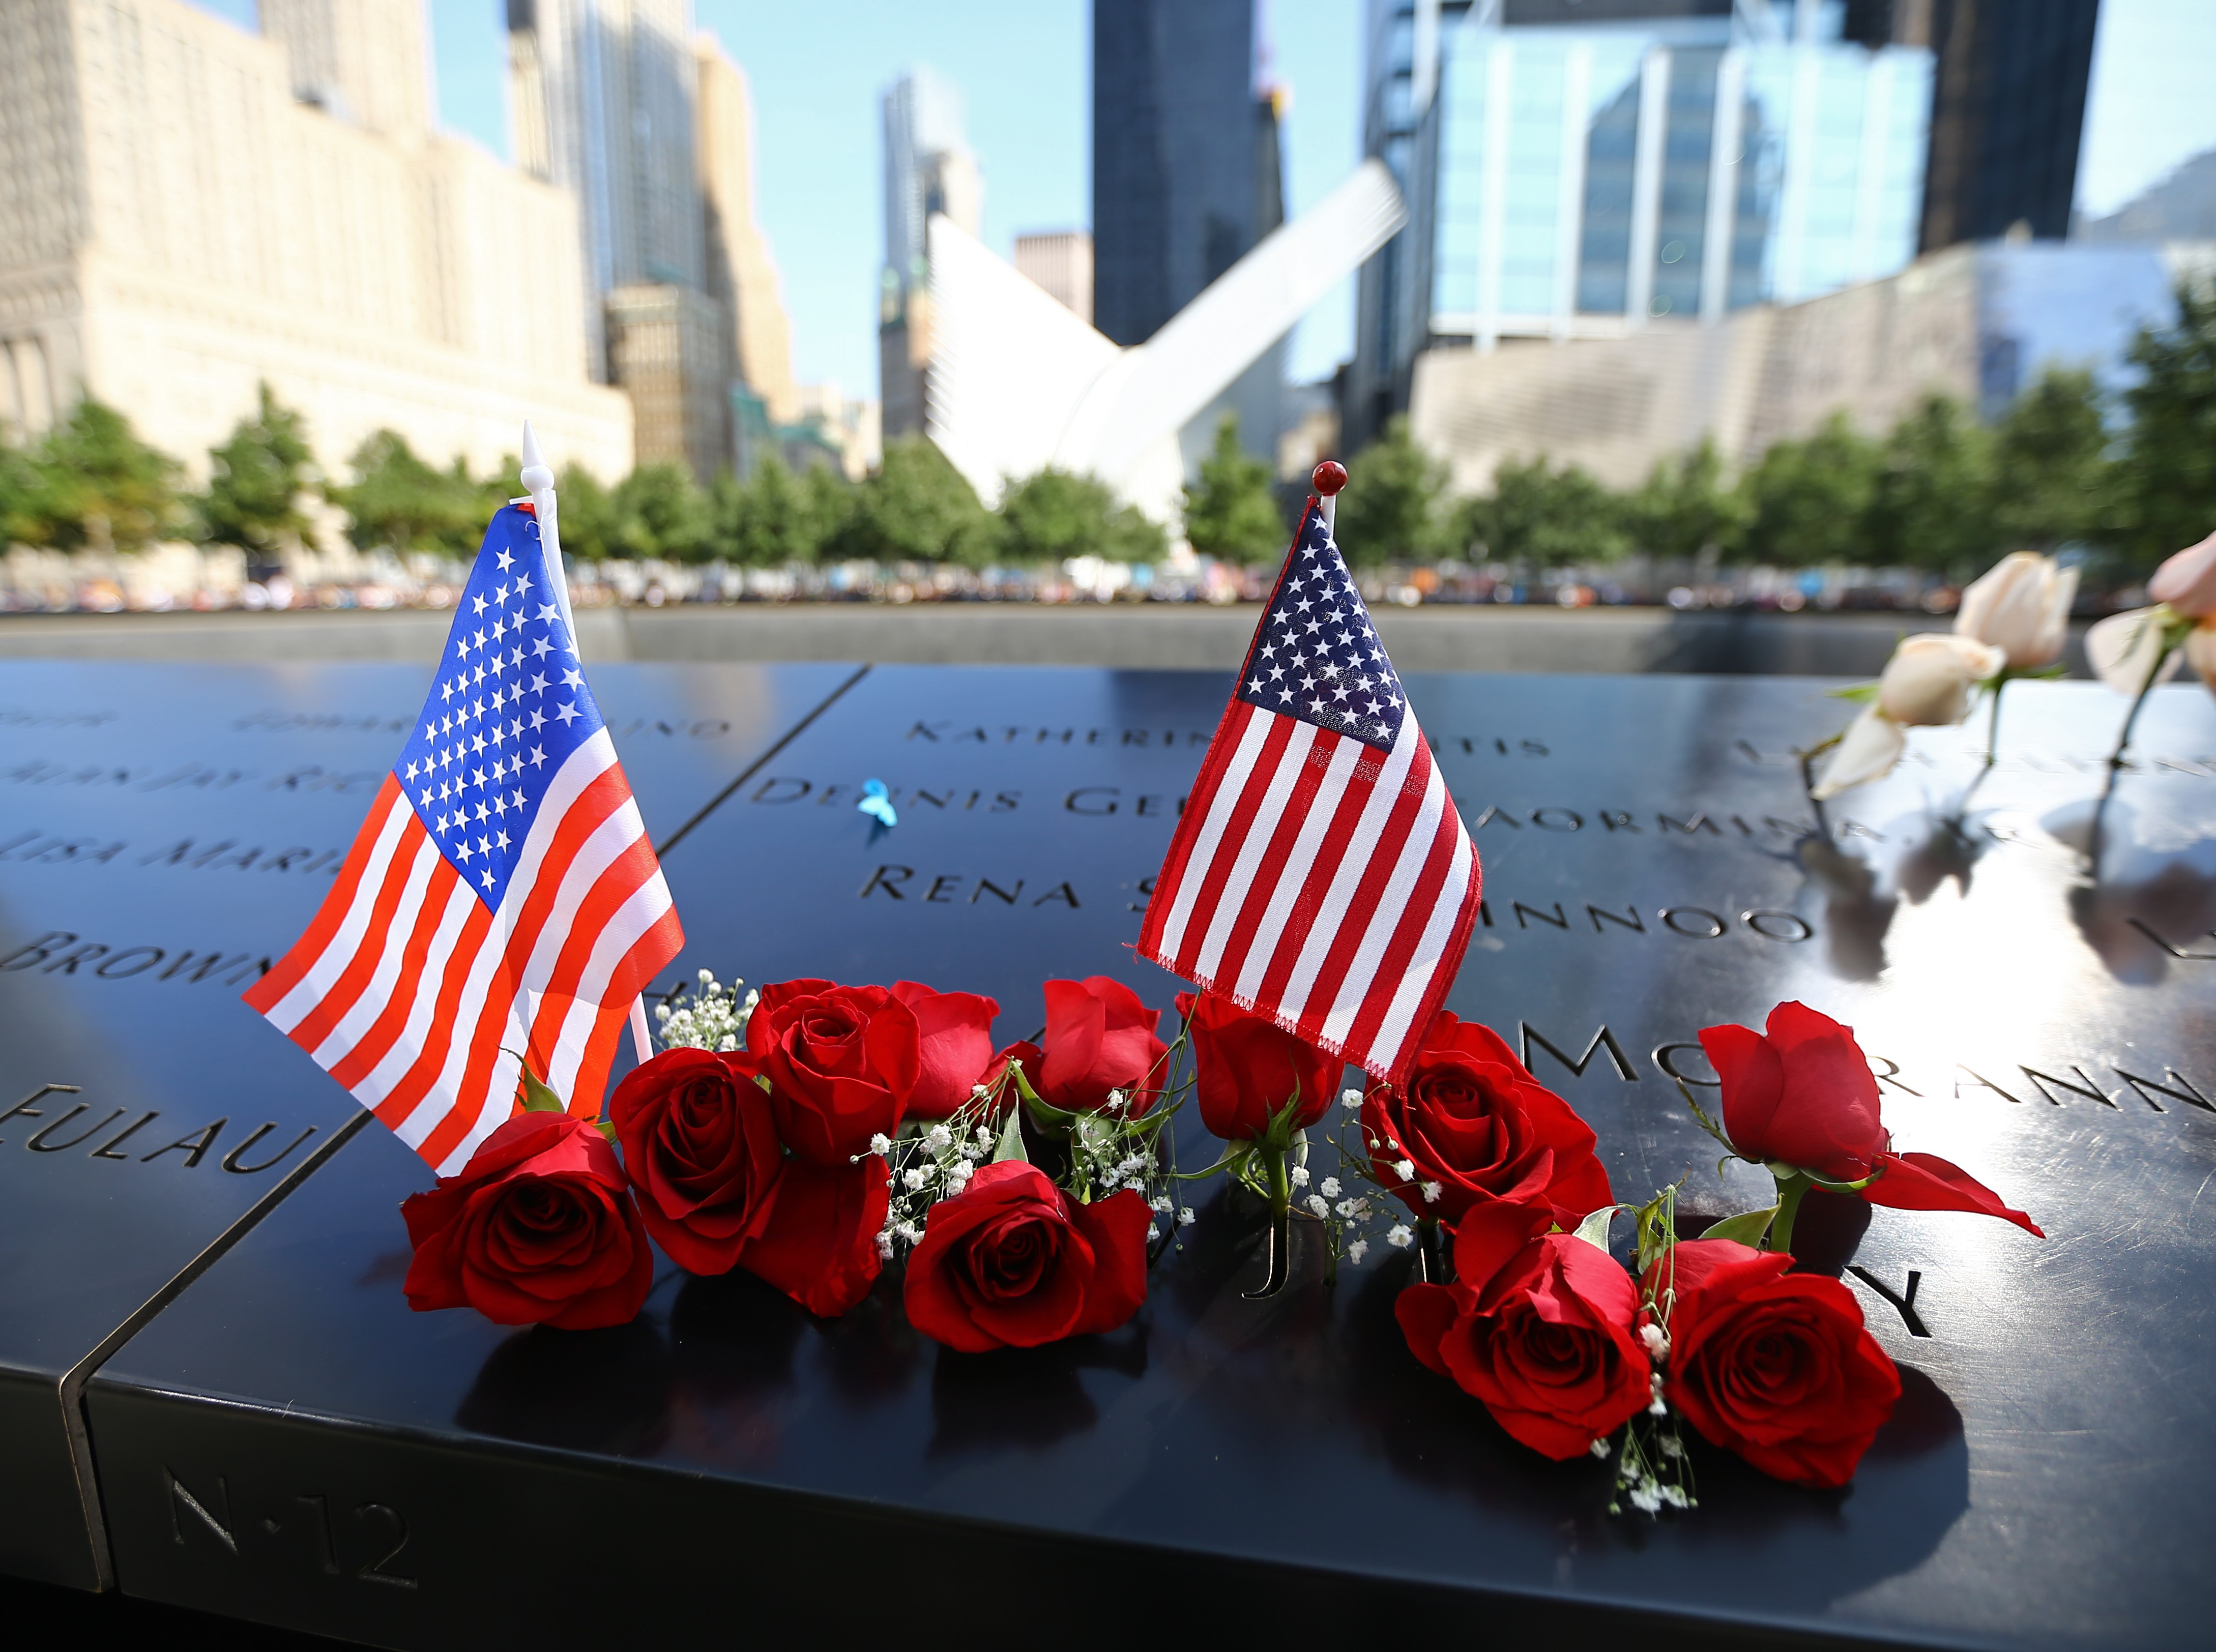 Flowers are placed over the monument for 9/11 victims on the 16th anniversary in Manhattan, New York, on Sept. 11, 2017.